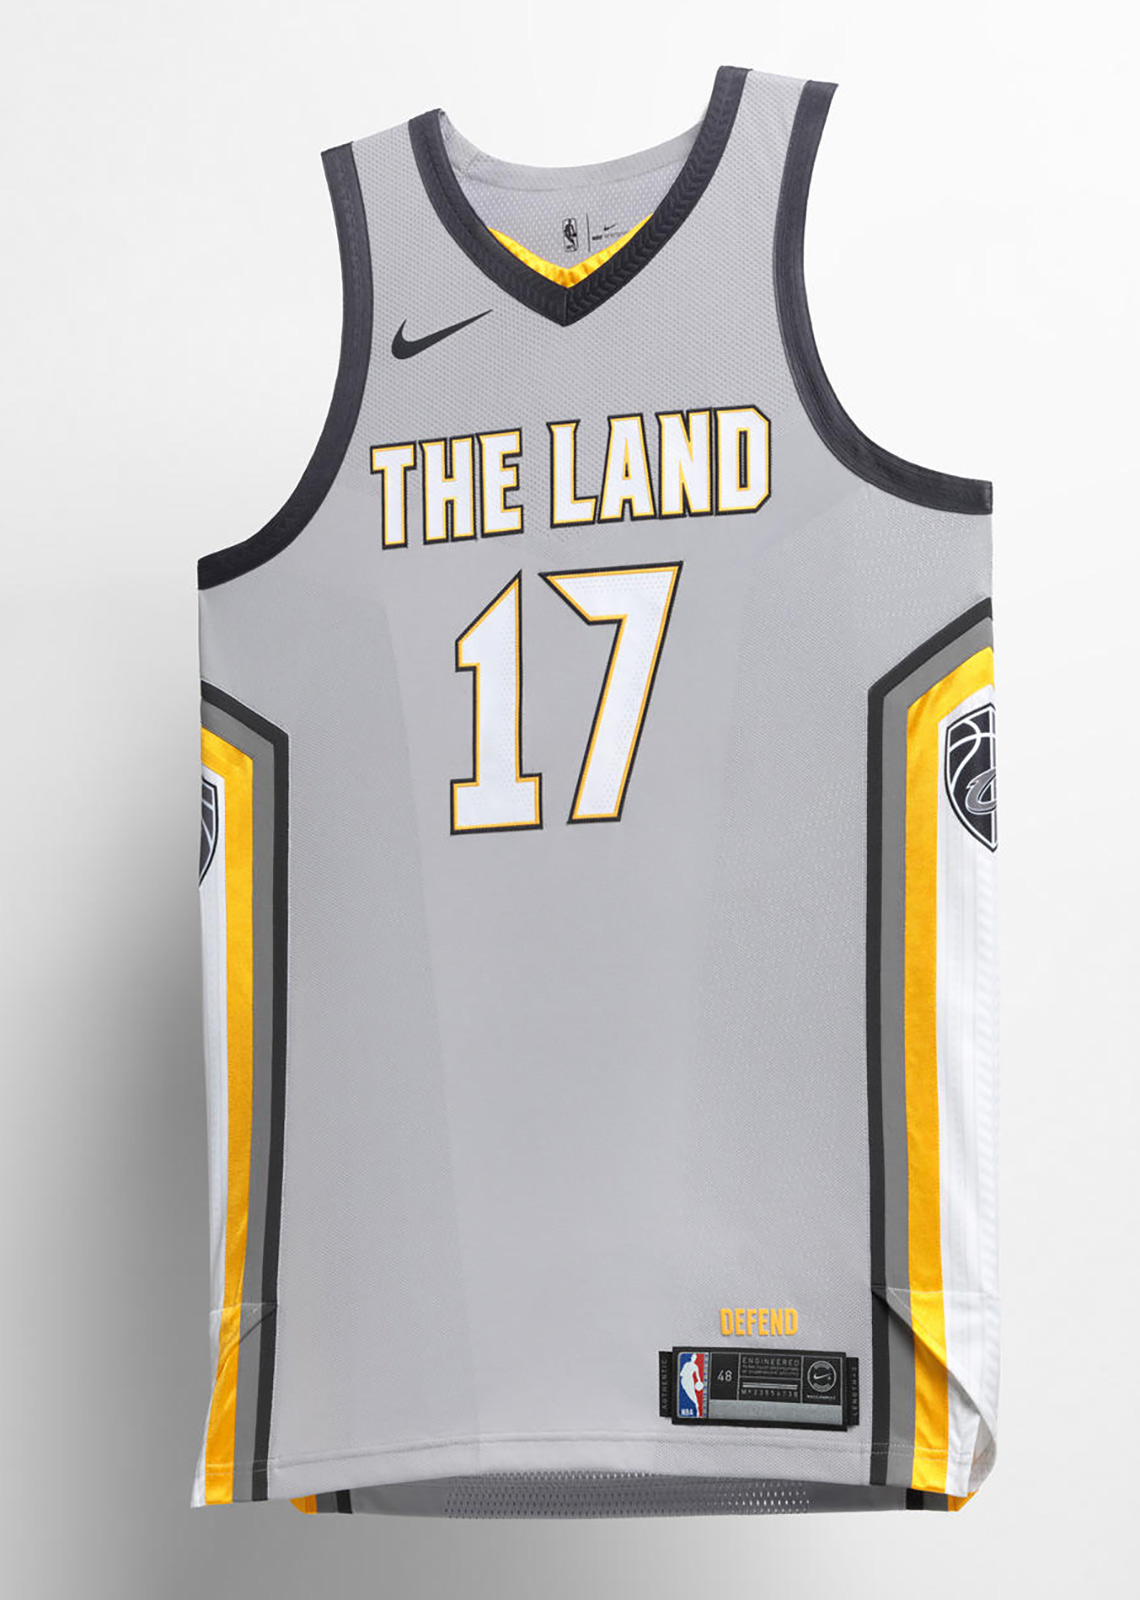 the latest c0120 b8f63 Nike NBA City Edition Uniforms | SneakerNews.com